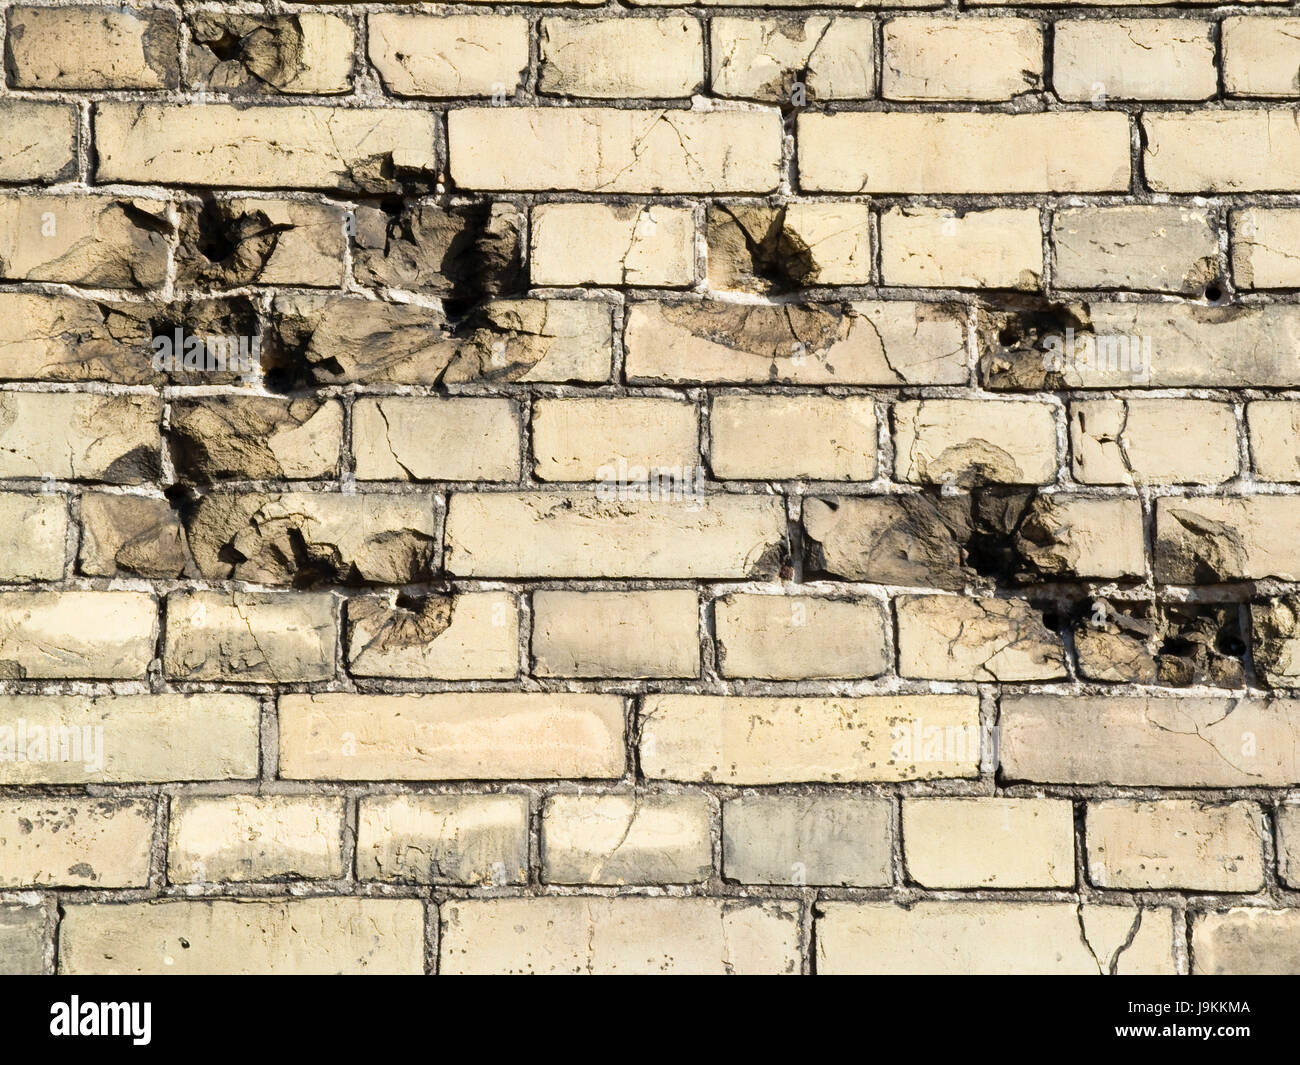 stone, wall, object, architectural, detail, stone, wall, joint, fugues, - Stock Image